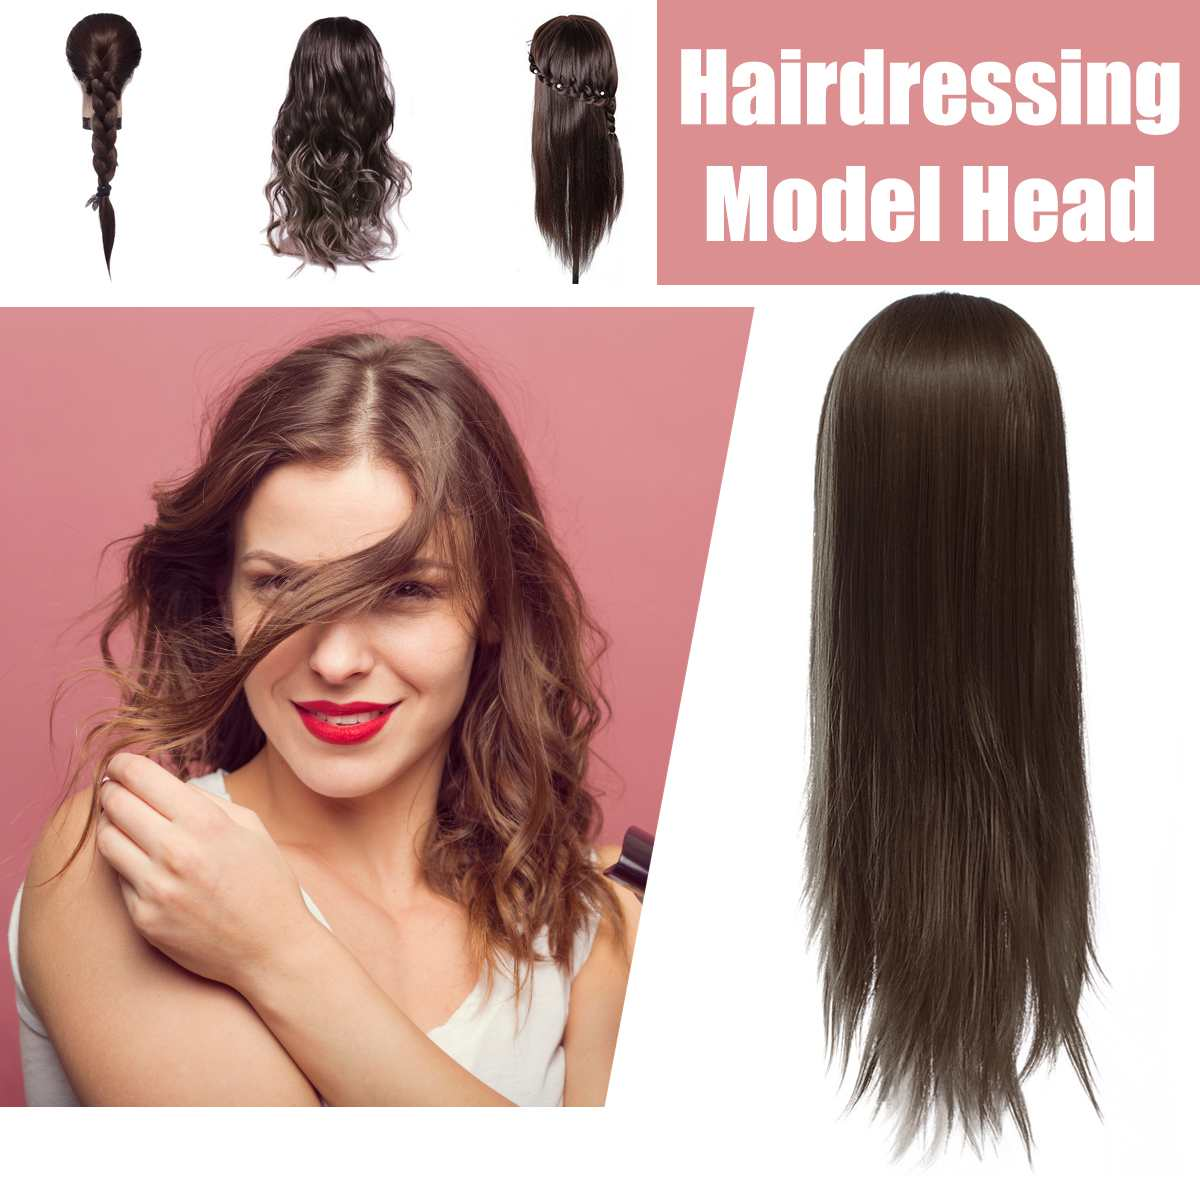 Professional Long Hair Hairdressing Training Practice Mannequin Practice Head Salon Women Hairdresser Styling Head Mold TrainingProfessional Long Hair Hairdressing Training Practice Mannequin Practice Head Salon Women Hairdresser Styling Head Mold Training